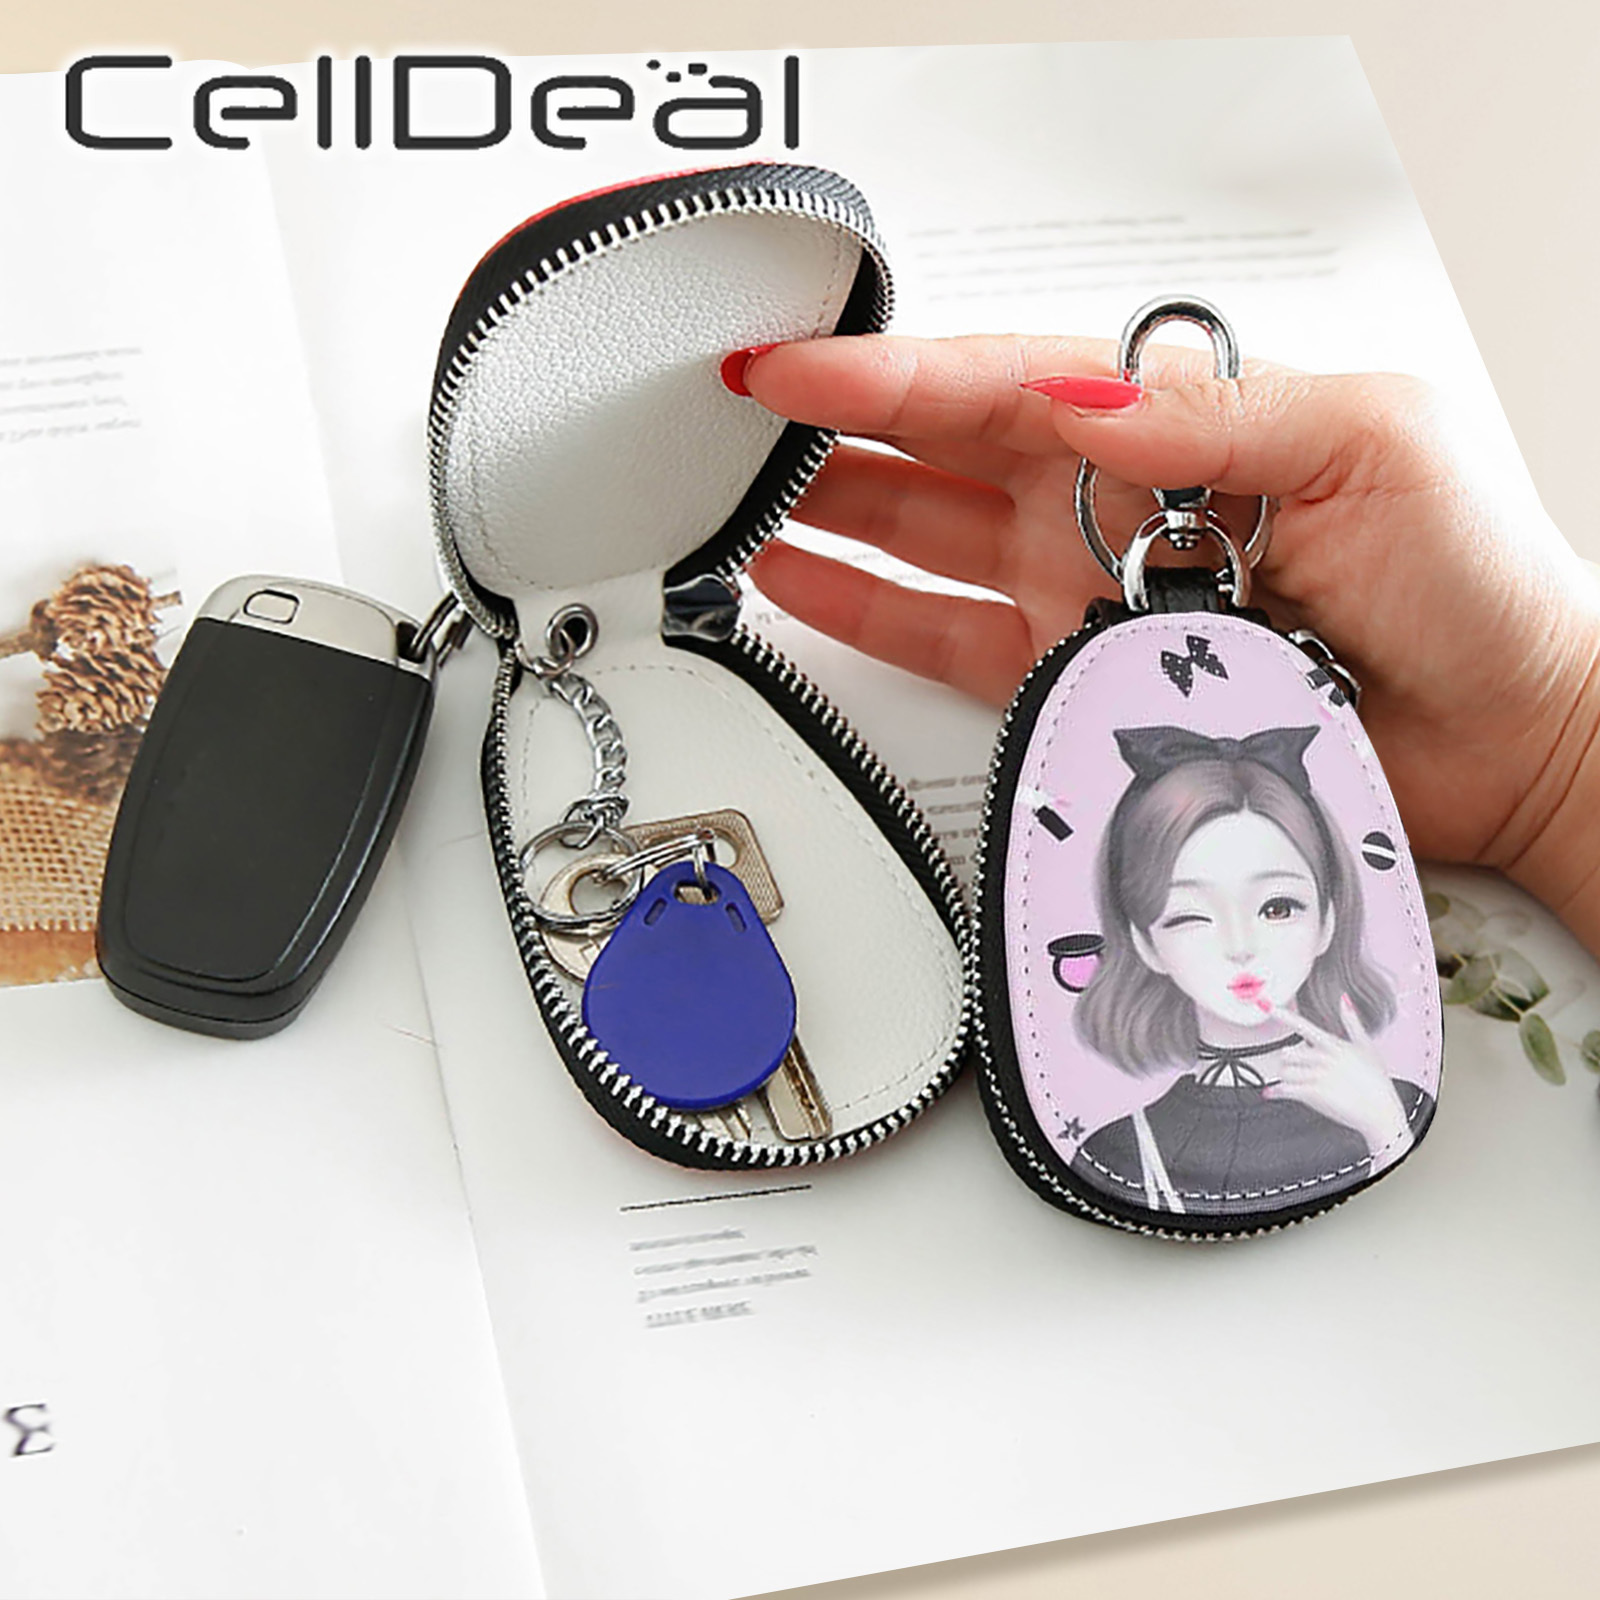 Fashion Painted Design Key Bag for Women Small Leather Key Wallets Housekeepers Car Key Holder Case New Leather Keychain Pouch